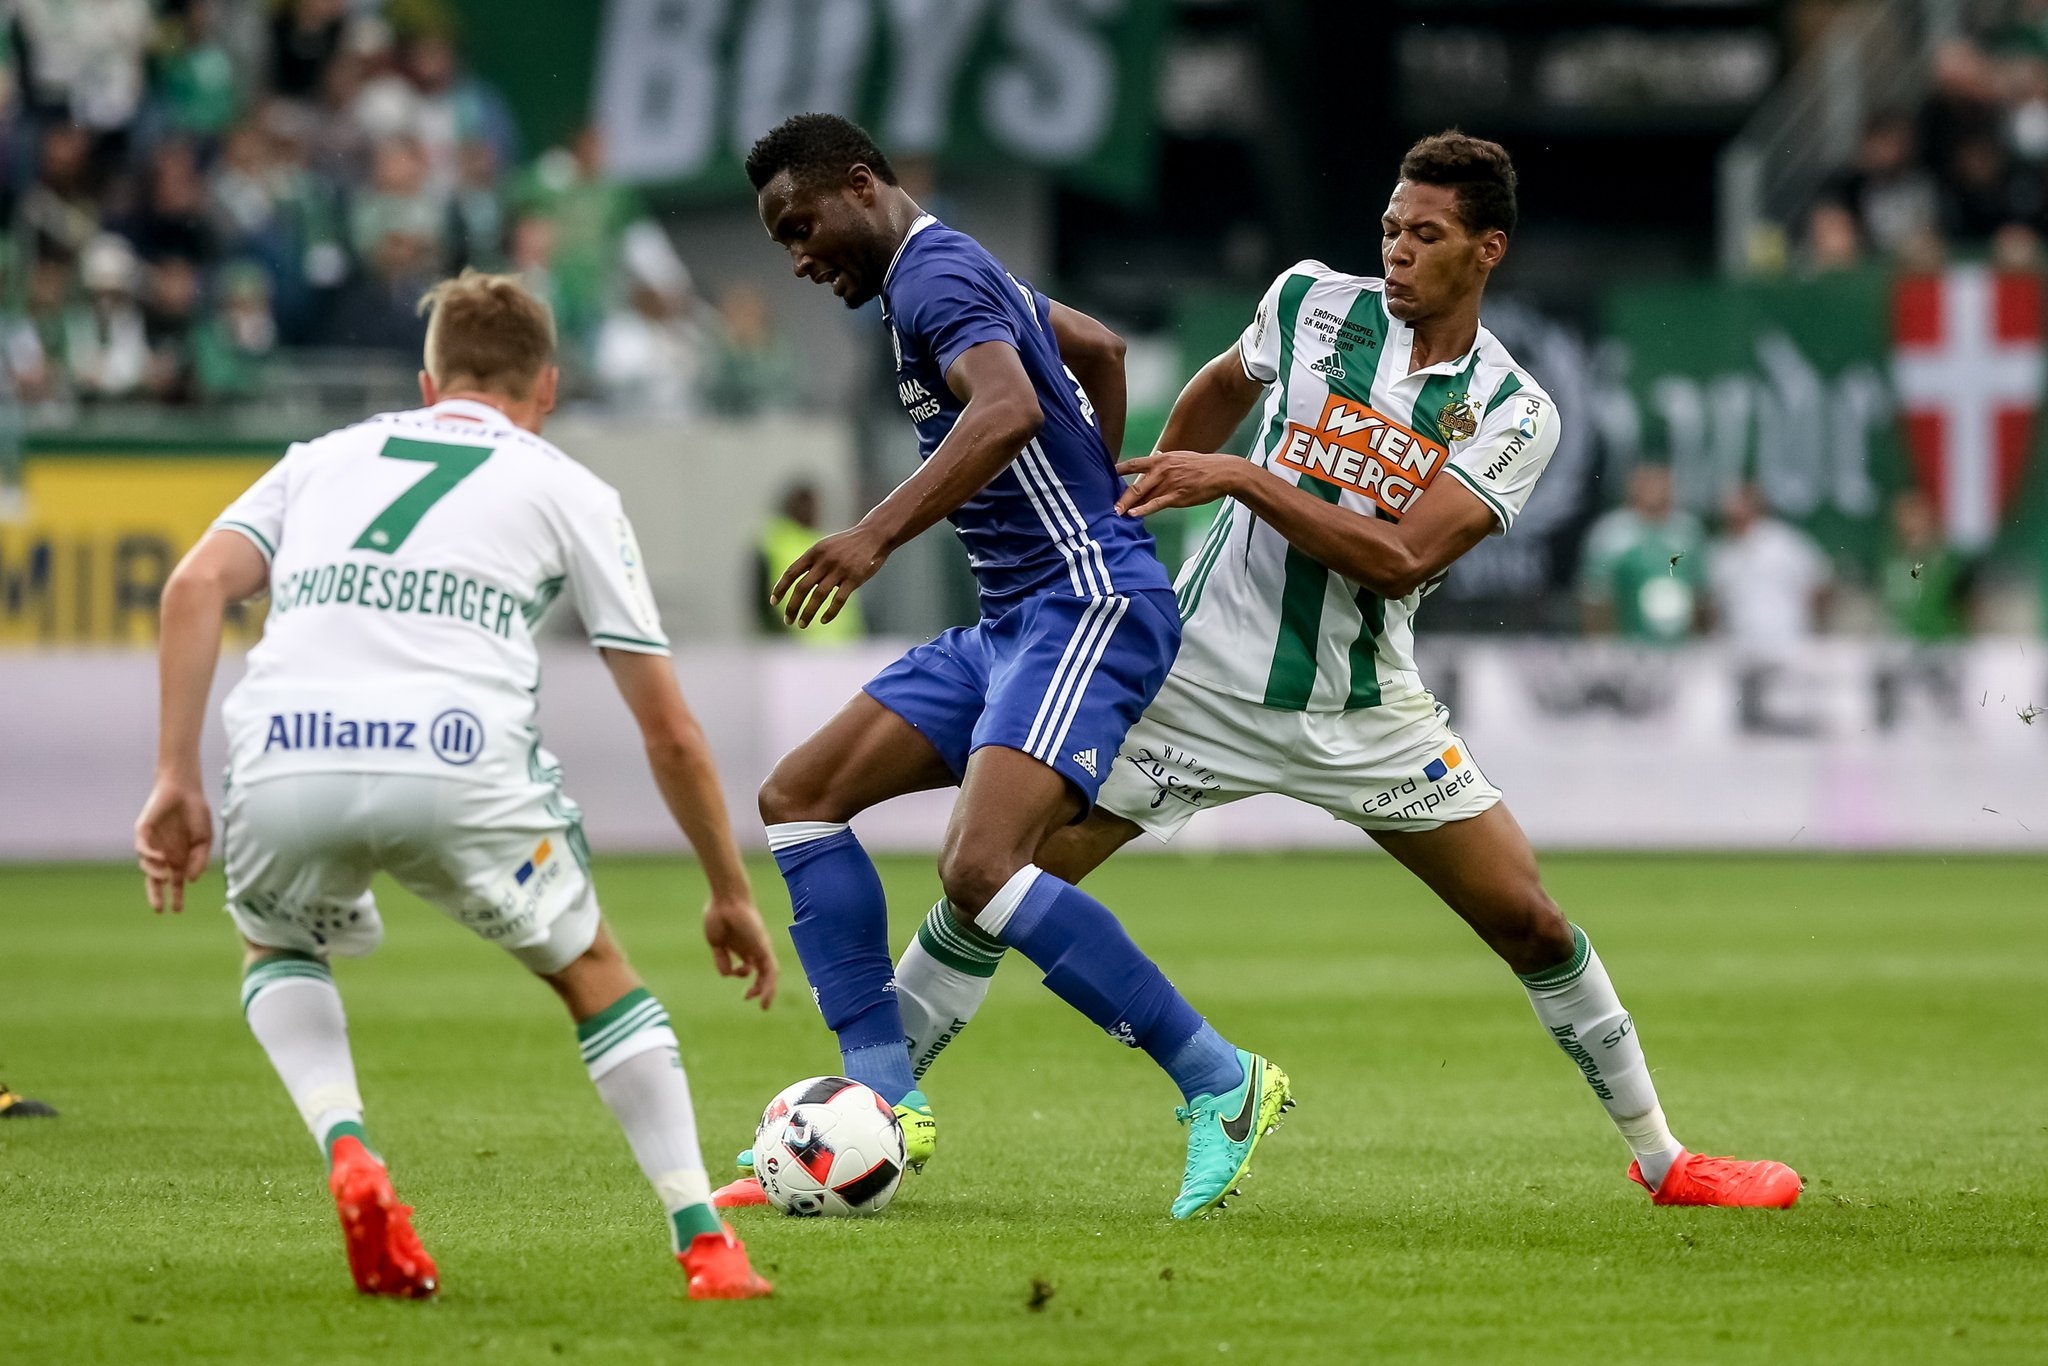 Mikel Insists On Chelsea Stay, Changes Name